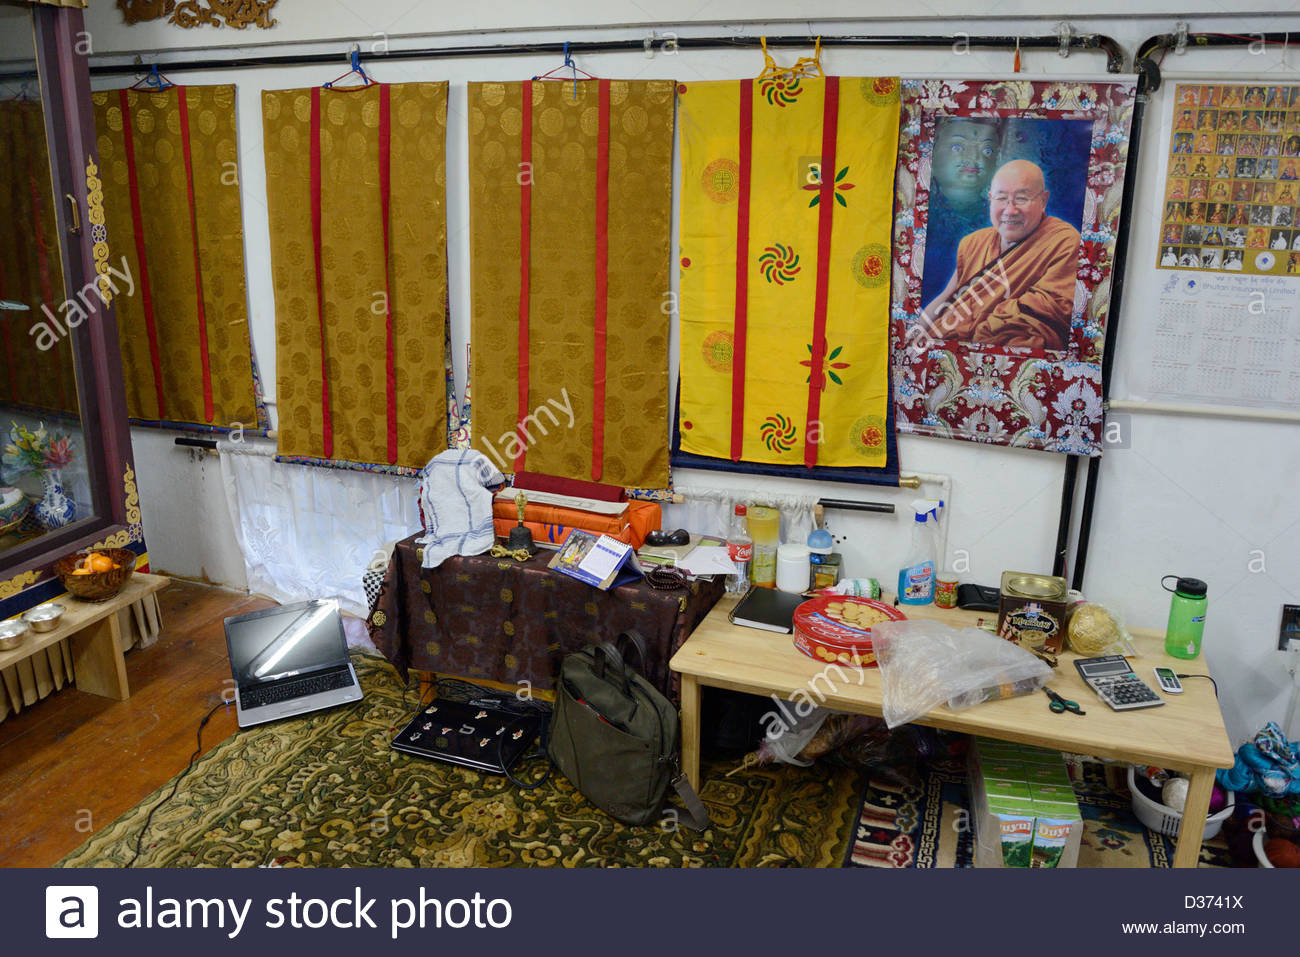 Office living area of Bhutanese weaving shop,Dell laptop,biscuits,cartons of juices,Buddhist calendar,shrine to - Stock Image